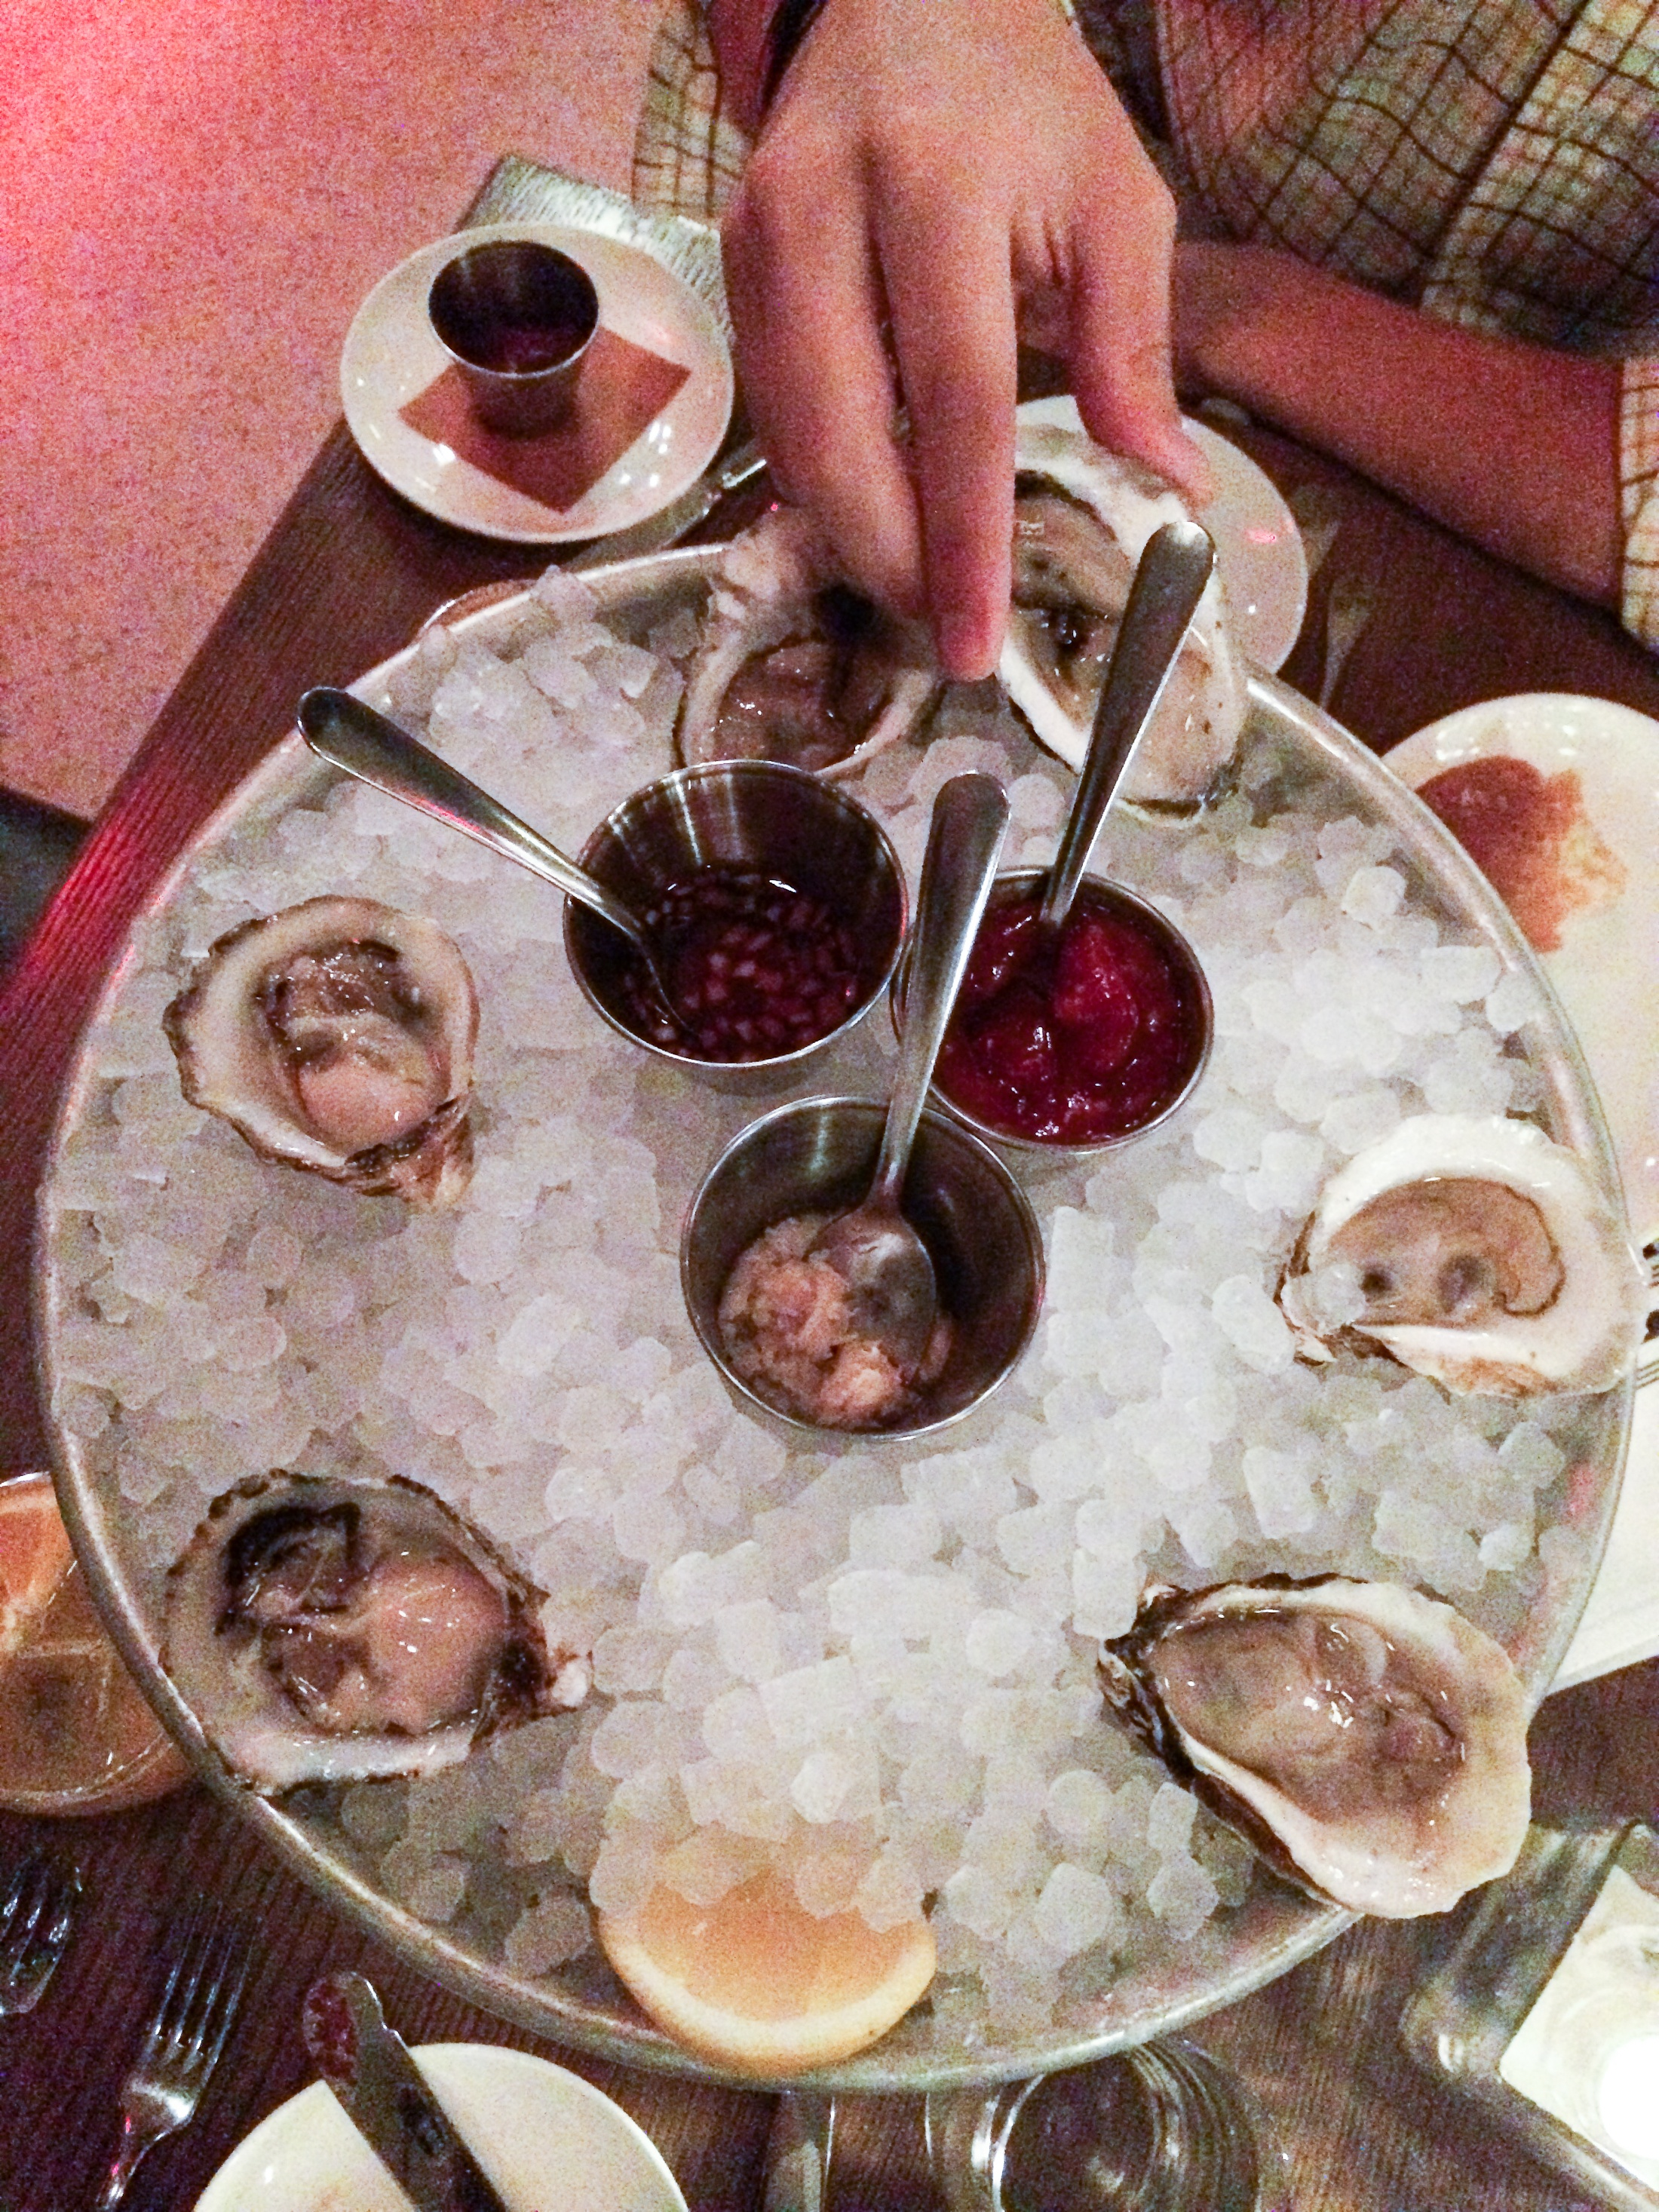 new york nyc the wayfarer seafood oysters scallops restaurant dining food lunch dinner photo shershegoes.com2-2